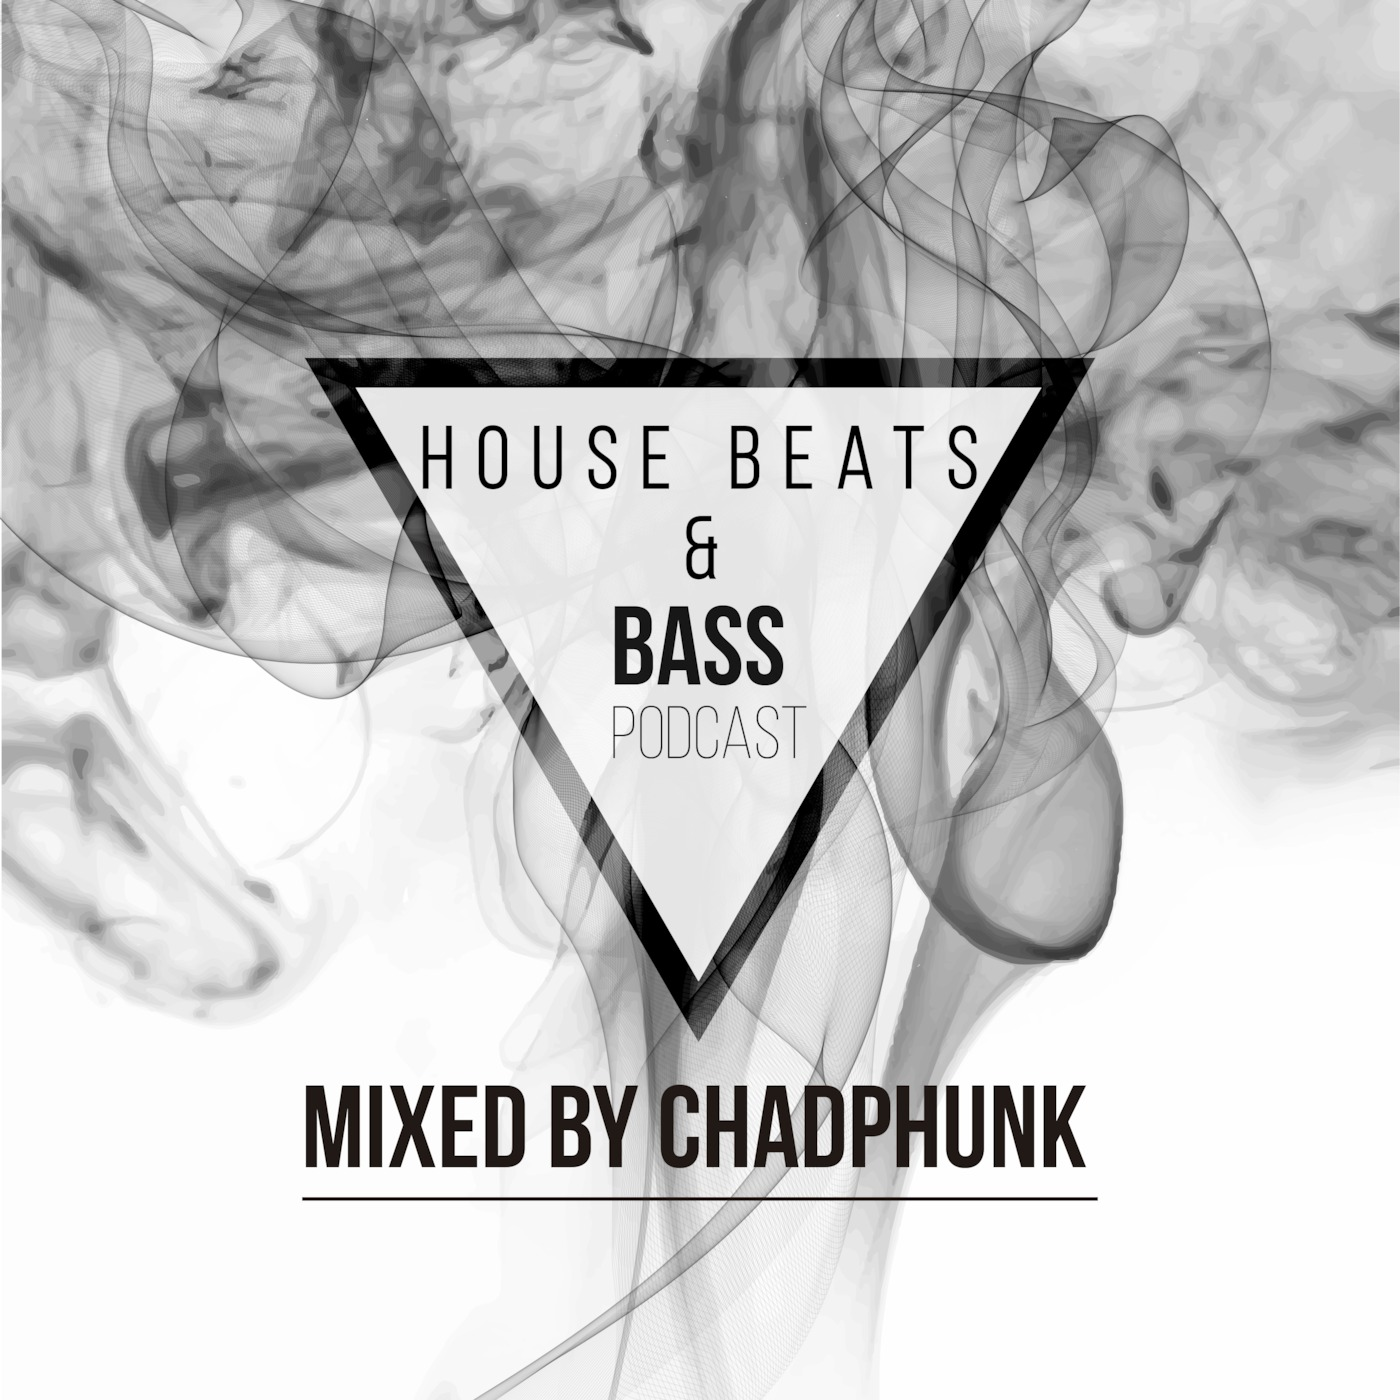 House beats & bass cast